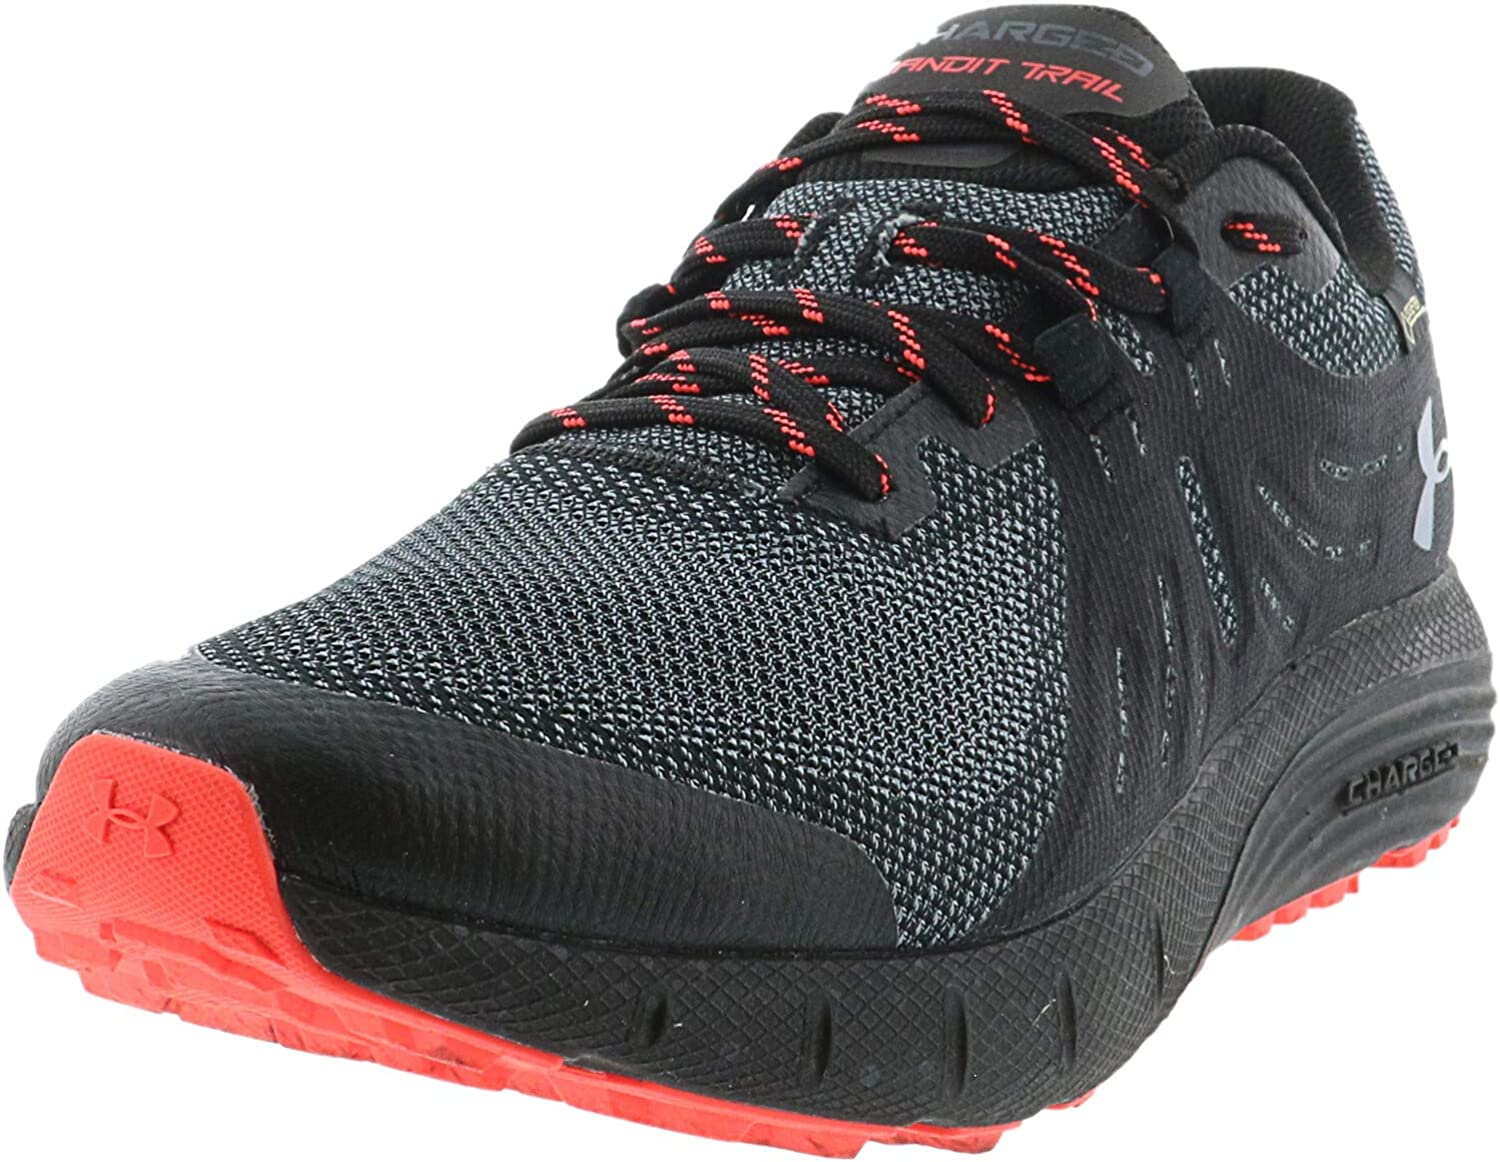 Under Armour Mens Charged Bandit Trail Gore-tex Hiking Shoe